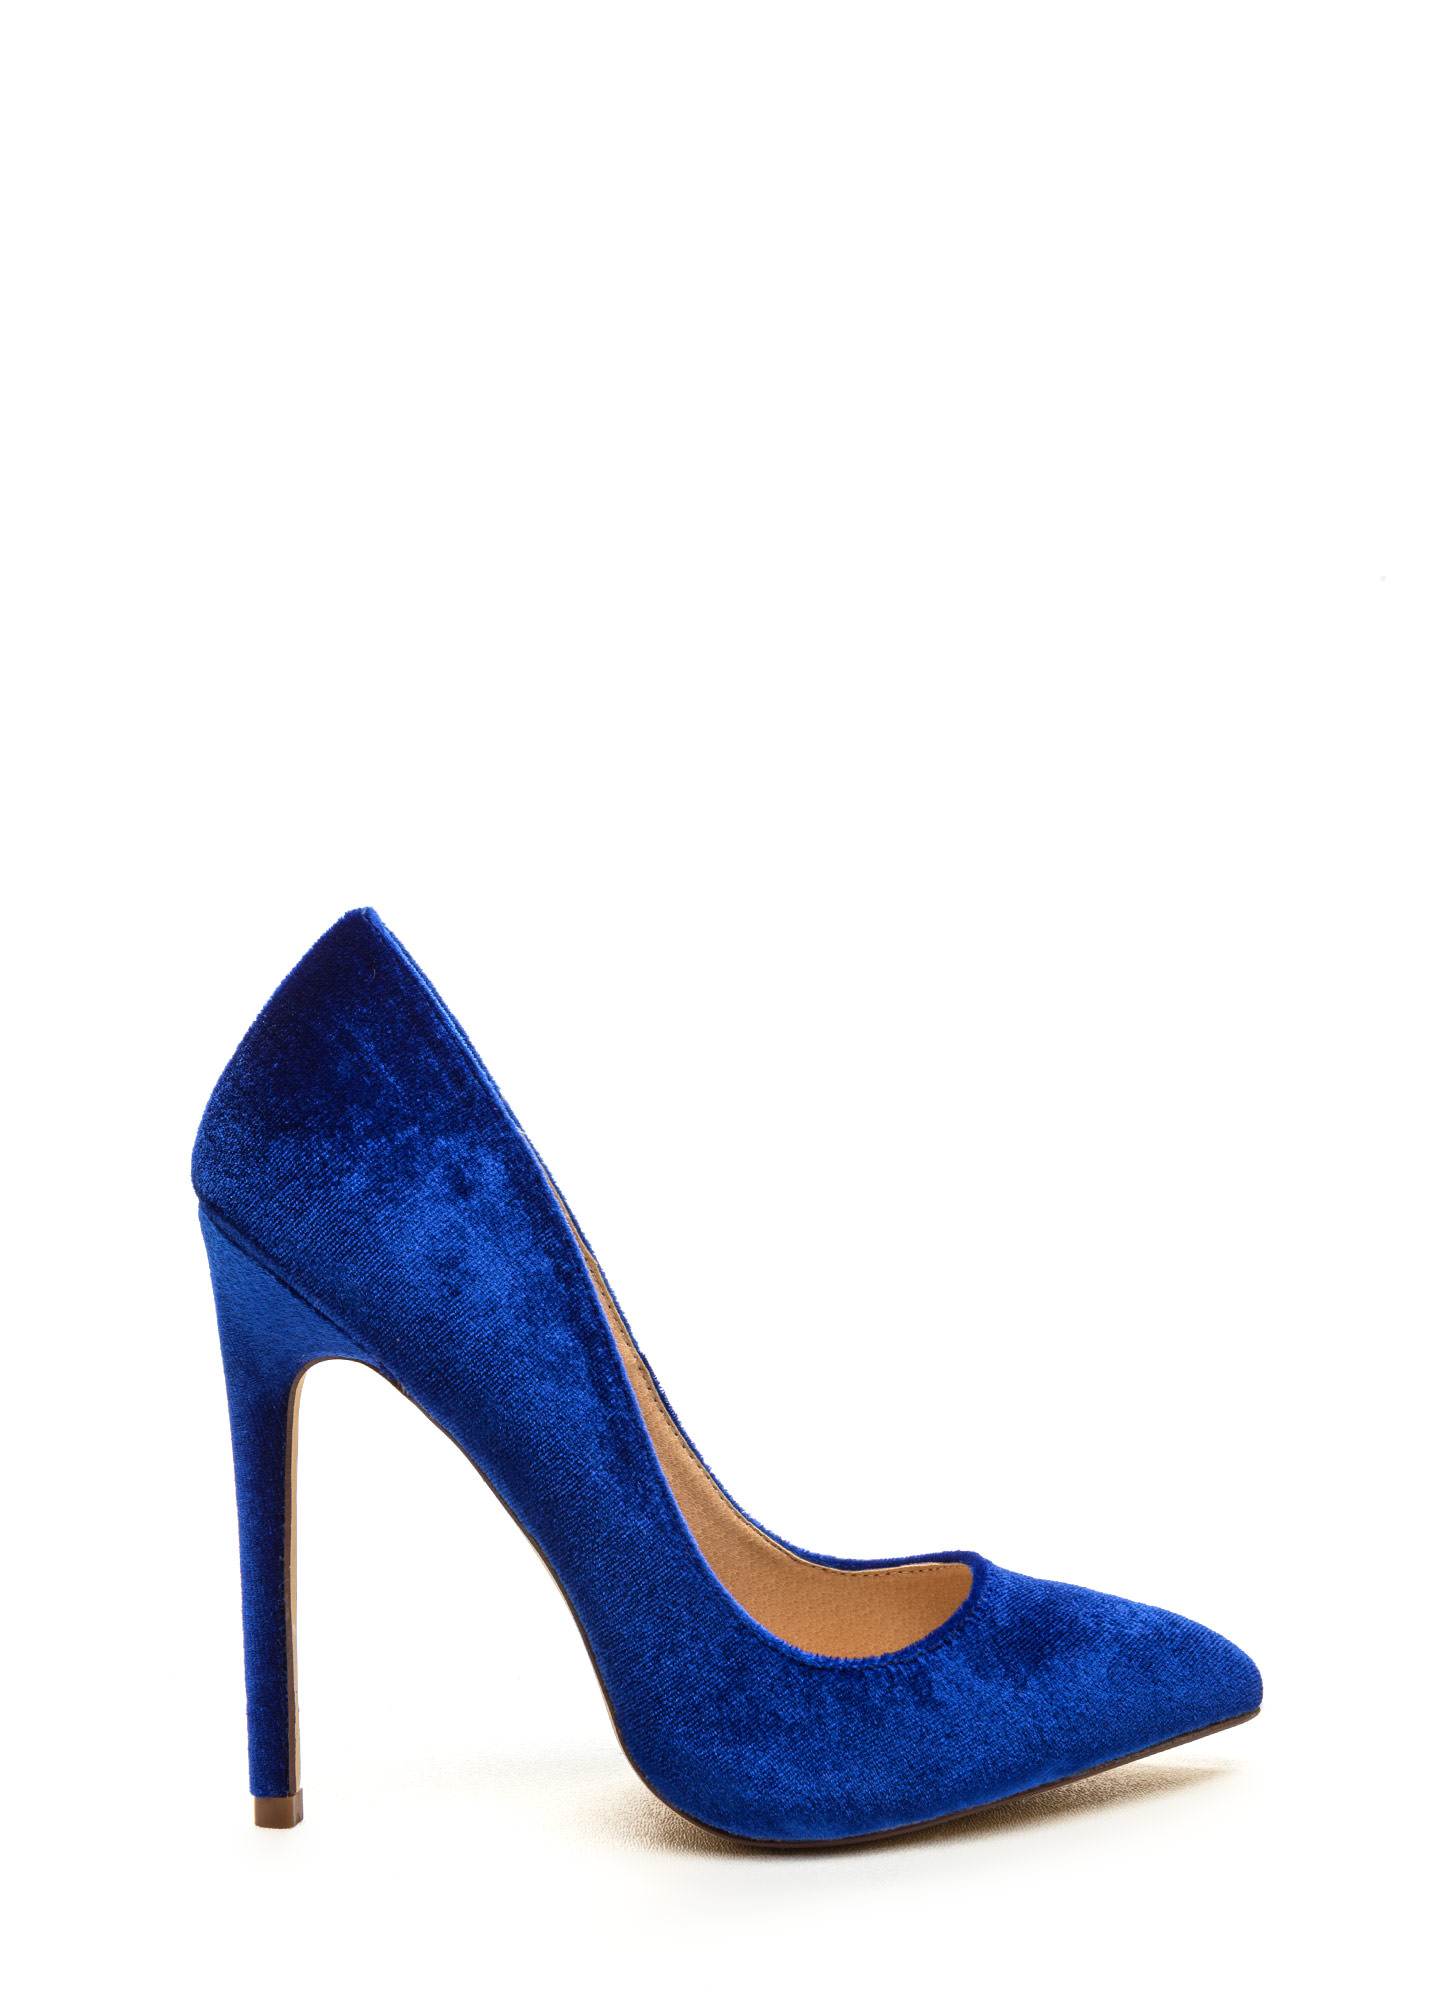 Bright Blue High Heels